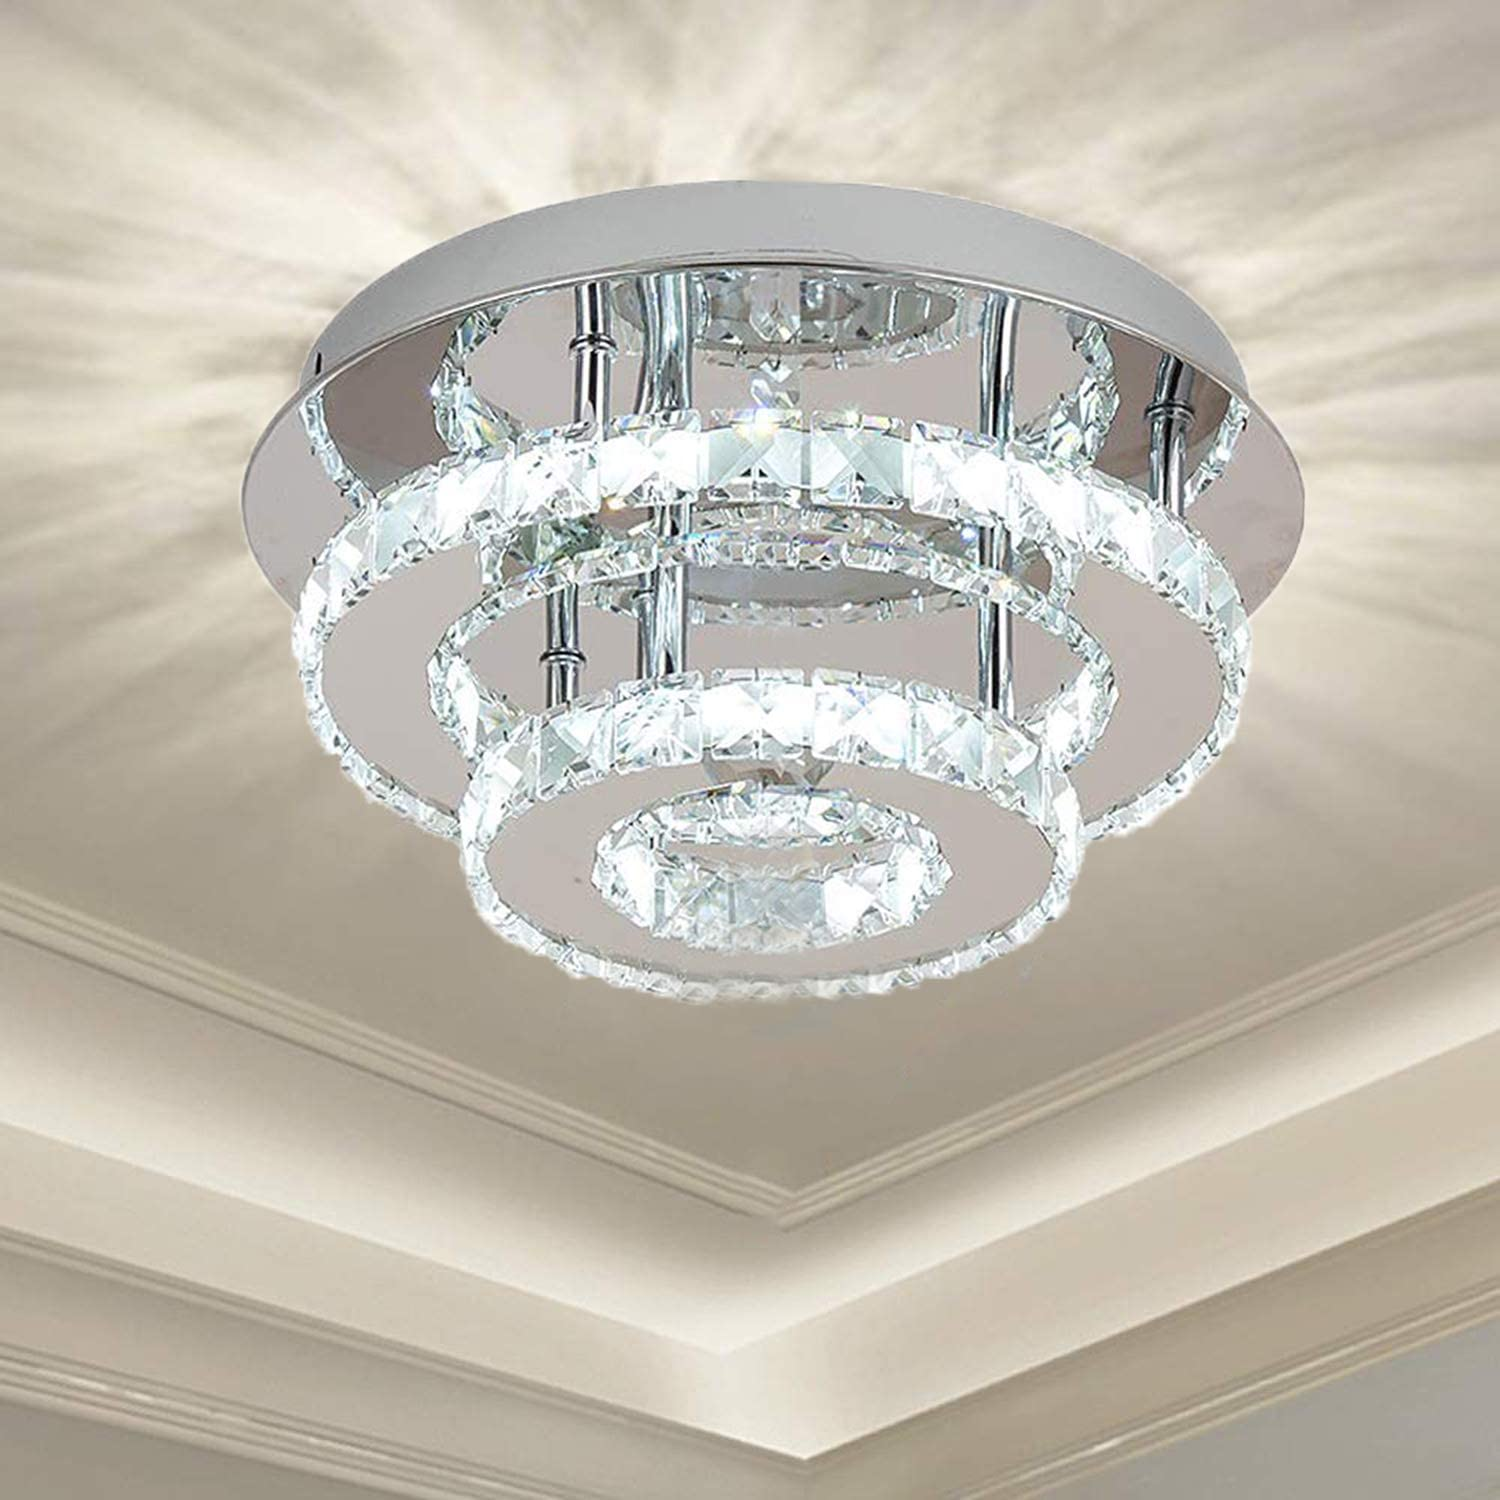 Ganeed Crystal Ceiling Light,Flush Mount Ceiling Lights Fixture,Modern LED  Ceiling Lamp Chandelier Lighting for Dining Room Bedroom Living Room